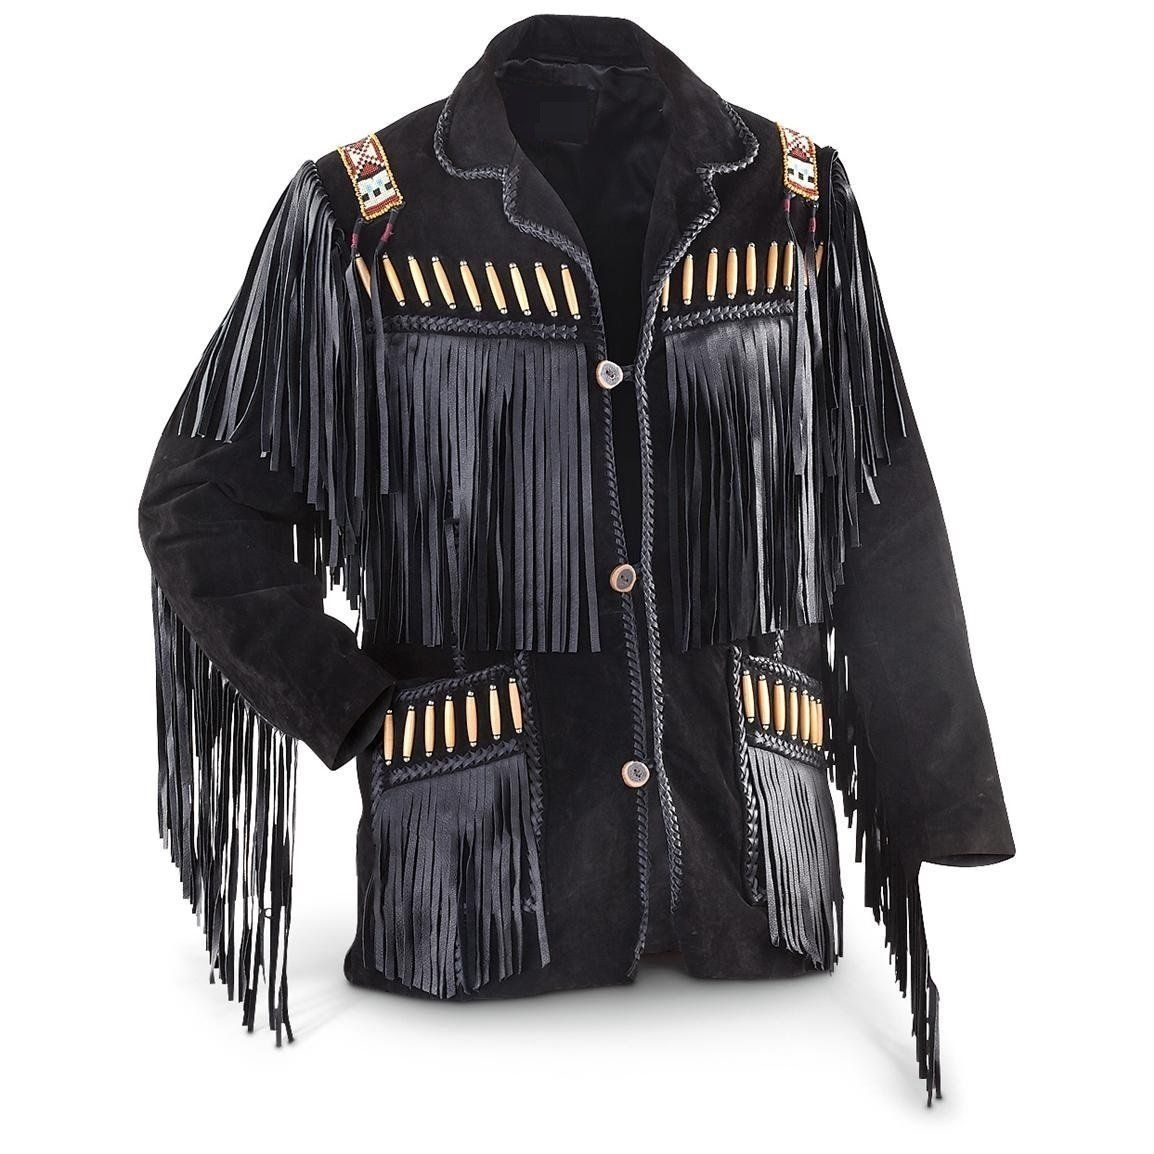 LEATHERAY Mens Fashion Western Genuine Cowboy Jacket Native American Wears Fringed /& Beaded Jacket Leather Brown